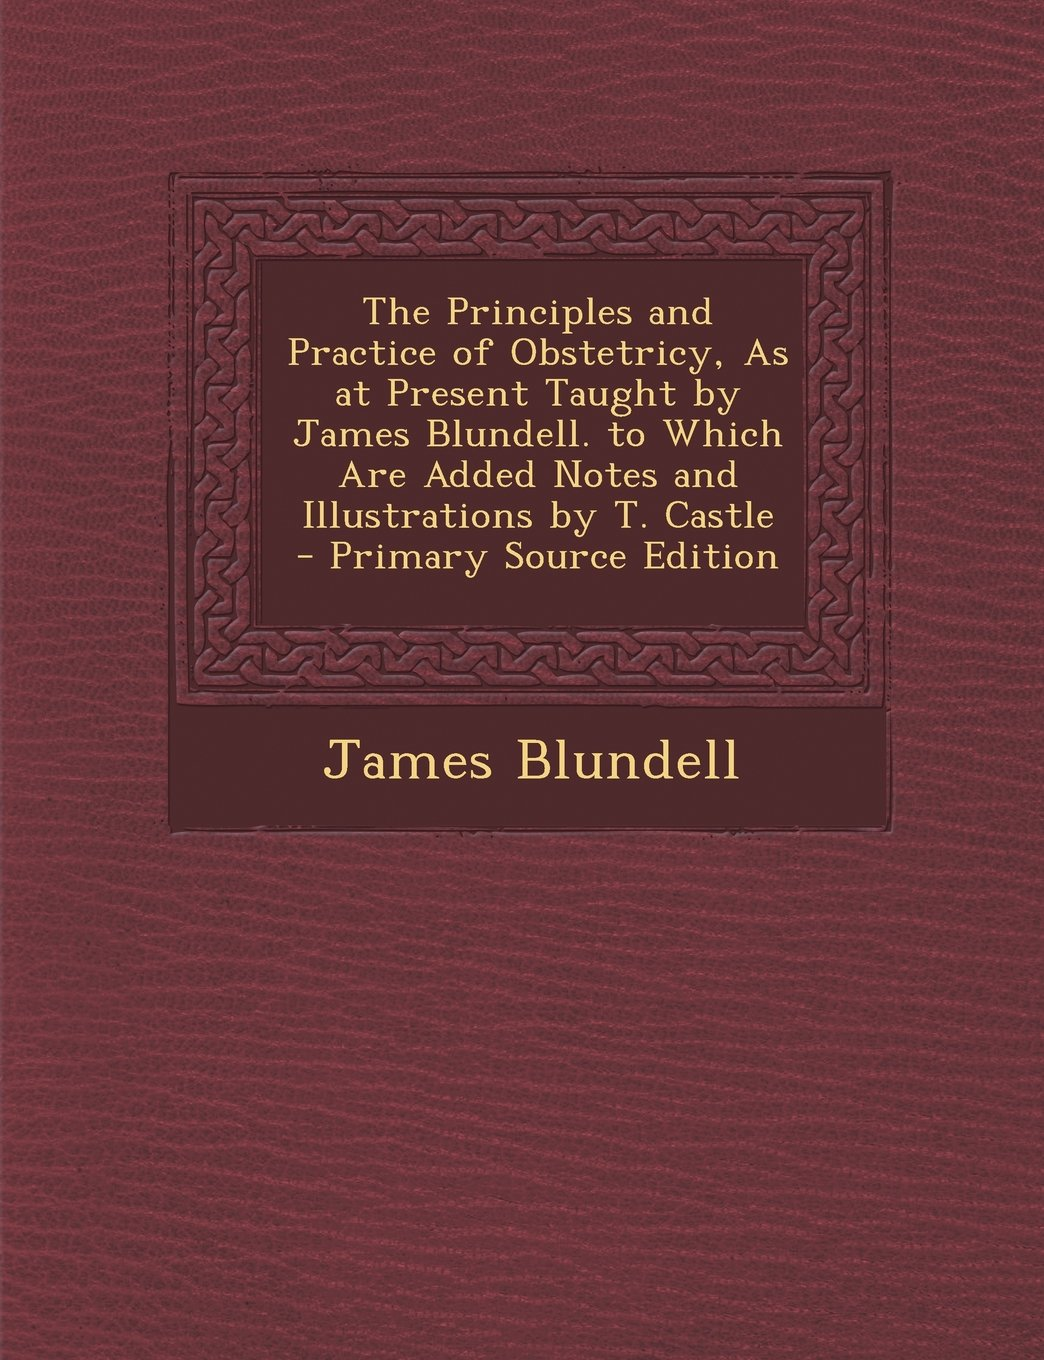 Download The Principles and Practice of Obstetricy, as at Present Taught by James Blundell. to Which Are Added Notes and Illustrations by T. Castle - Primary S PDF